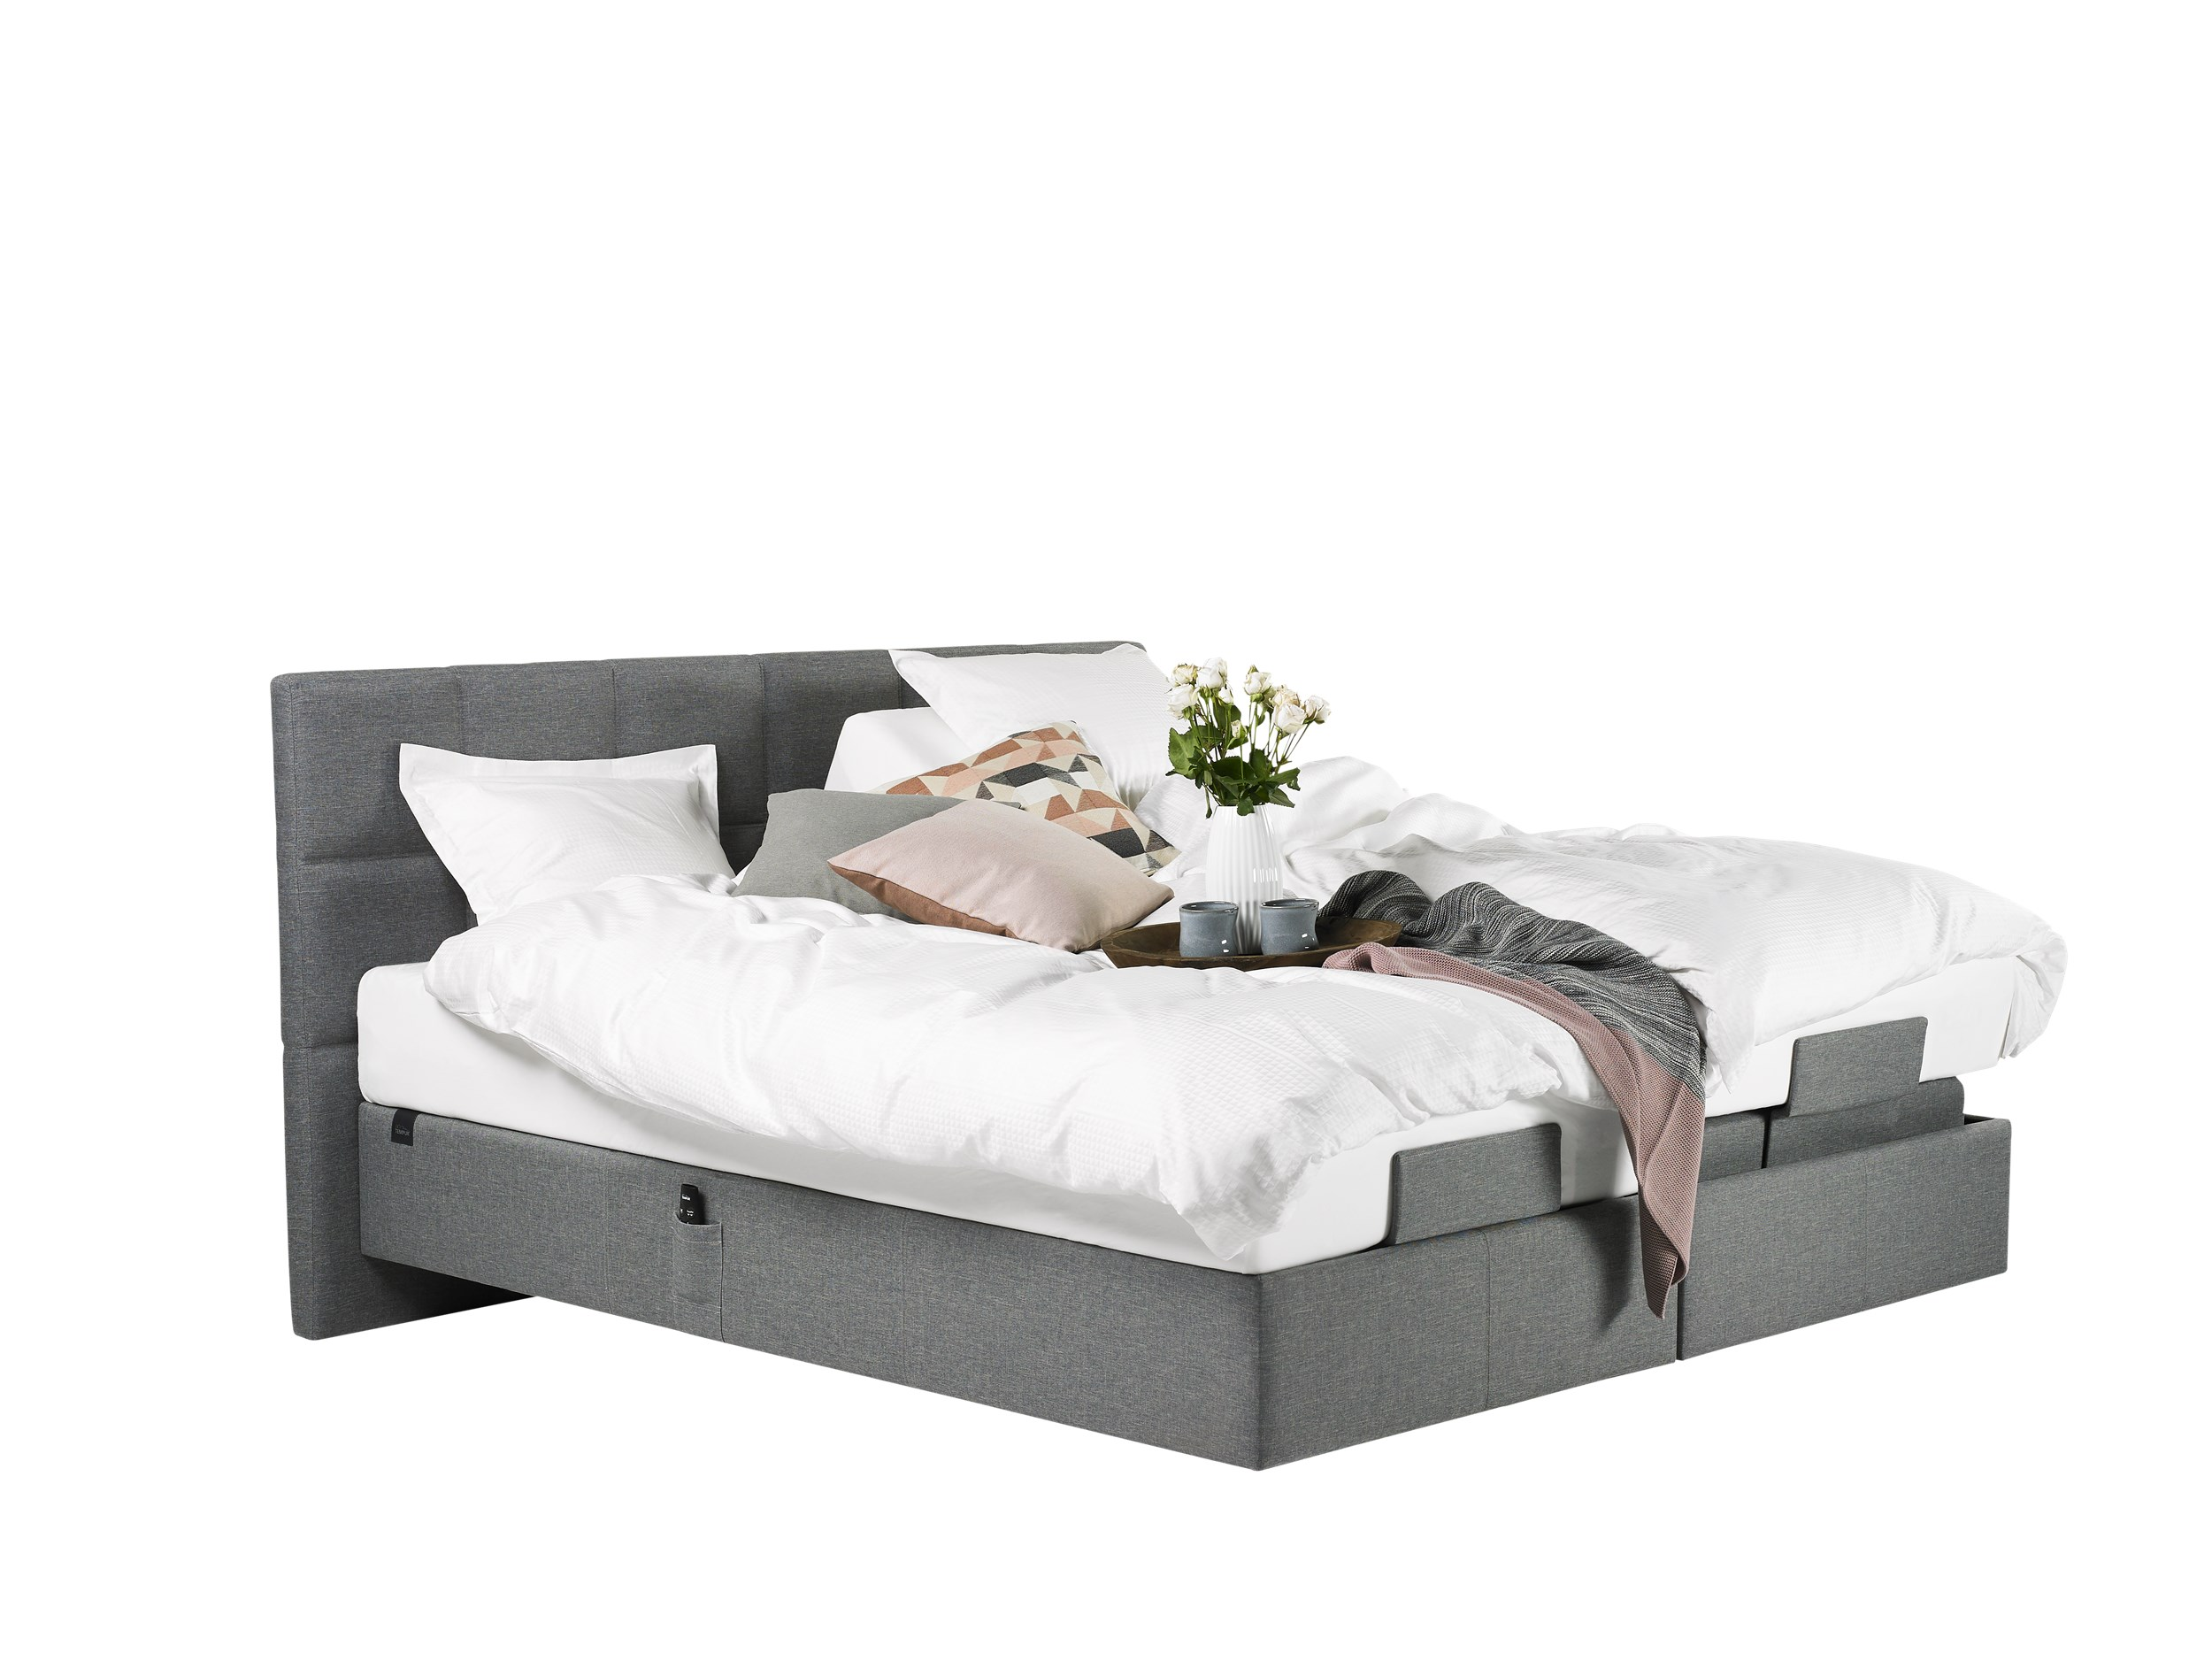 Tempur Spring Box Adjustable ställbar säng 180 x 200 cm